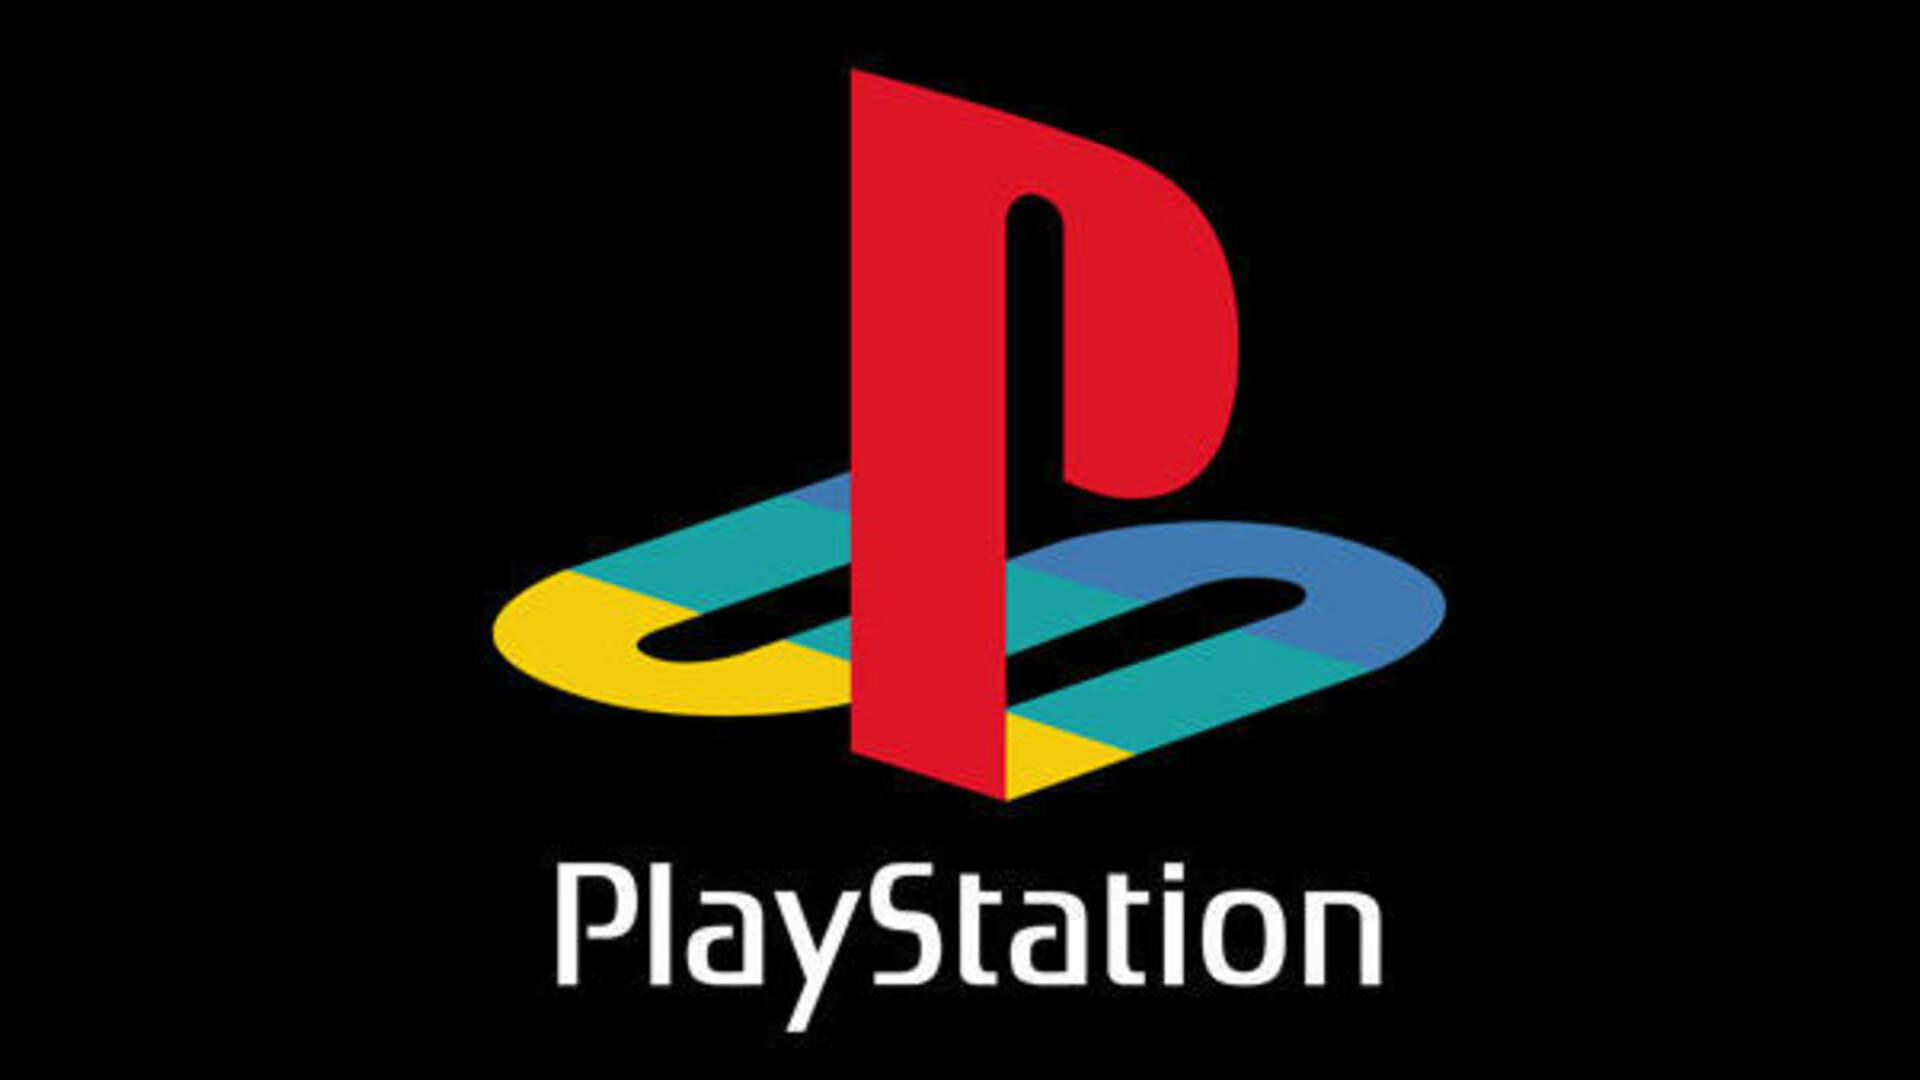 PlayStation Nostalgia Swamps Twitter with Thousands of Memories